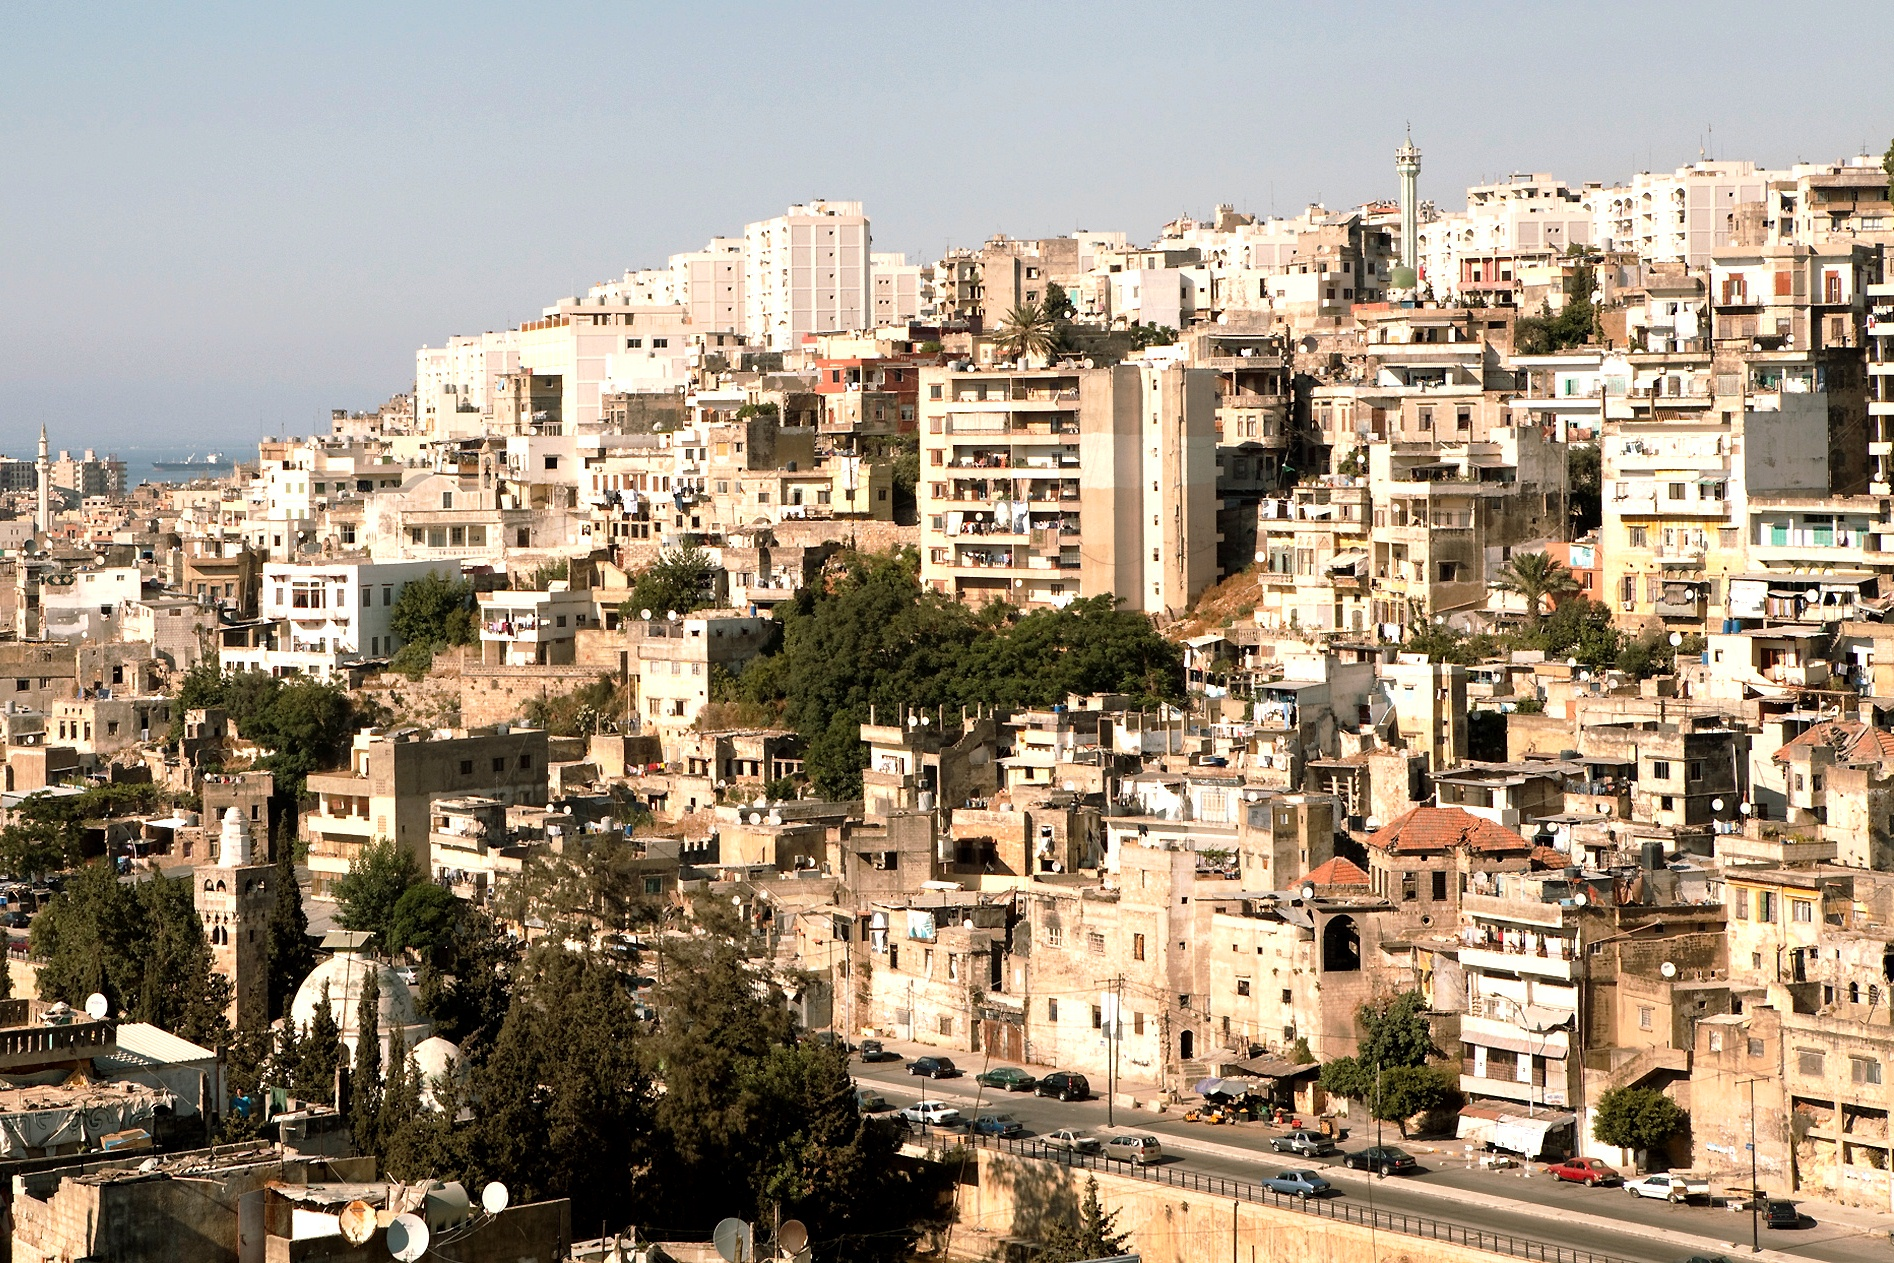 View of Jebel Mohsen neighbourhood, Tripoli, northern Lebanon. Jebel Mohsen's residents, mostly Alawi, have been at odds with the mostly Sunni residents of Bab al-Tabbaneh. The Syrian conflict has made their age-old sectarian tensions worse